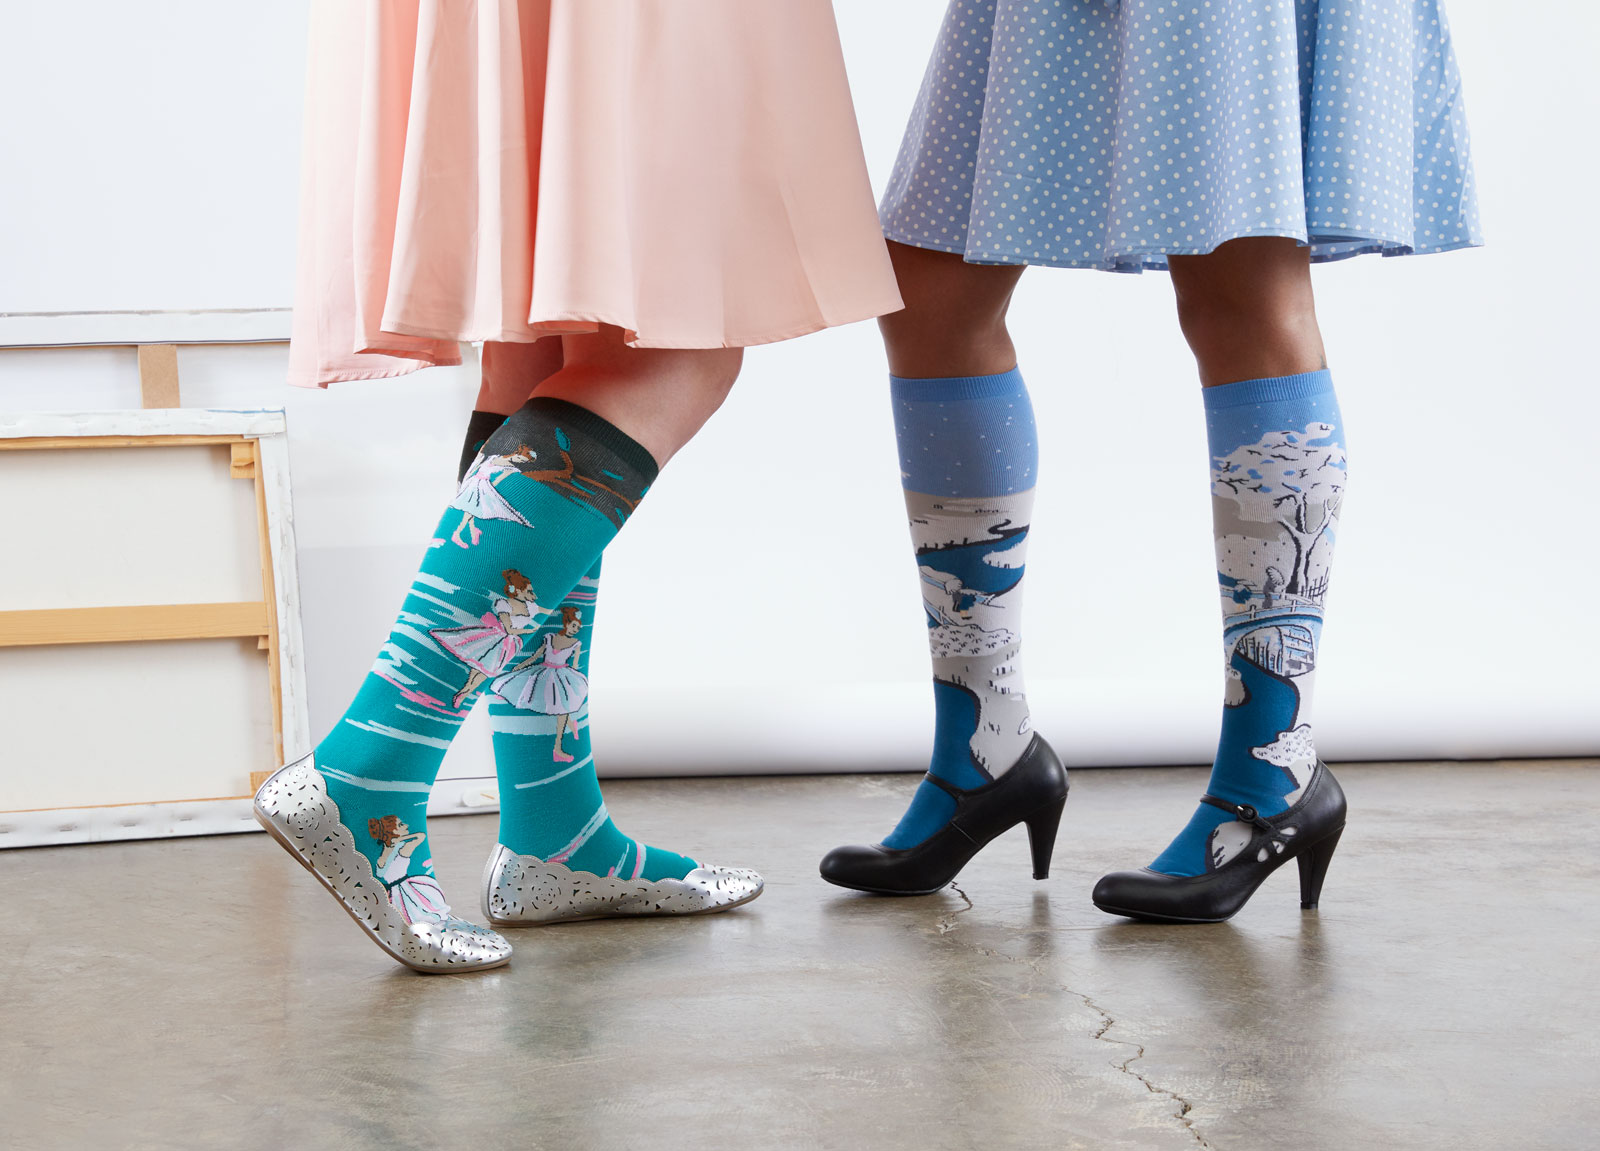 socks based on a painting by degas and a japanese woodblock carving